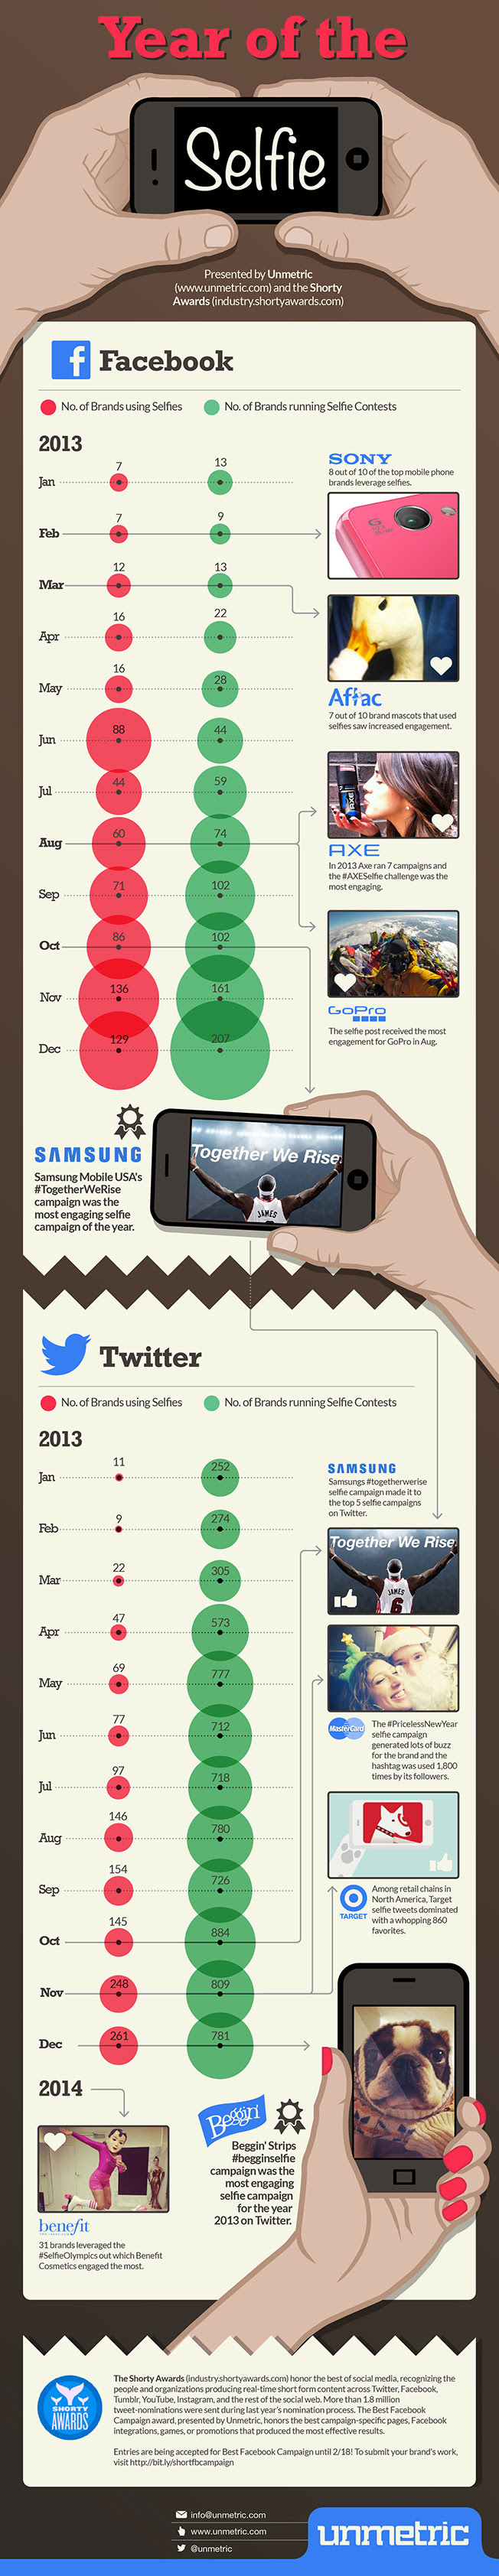 How Brands Are Taking Advantage Of Selfie Culture - infographic